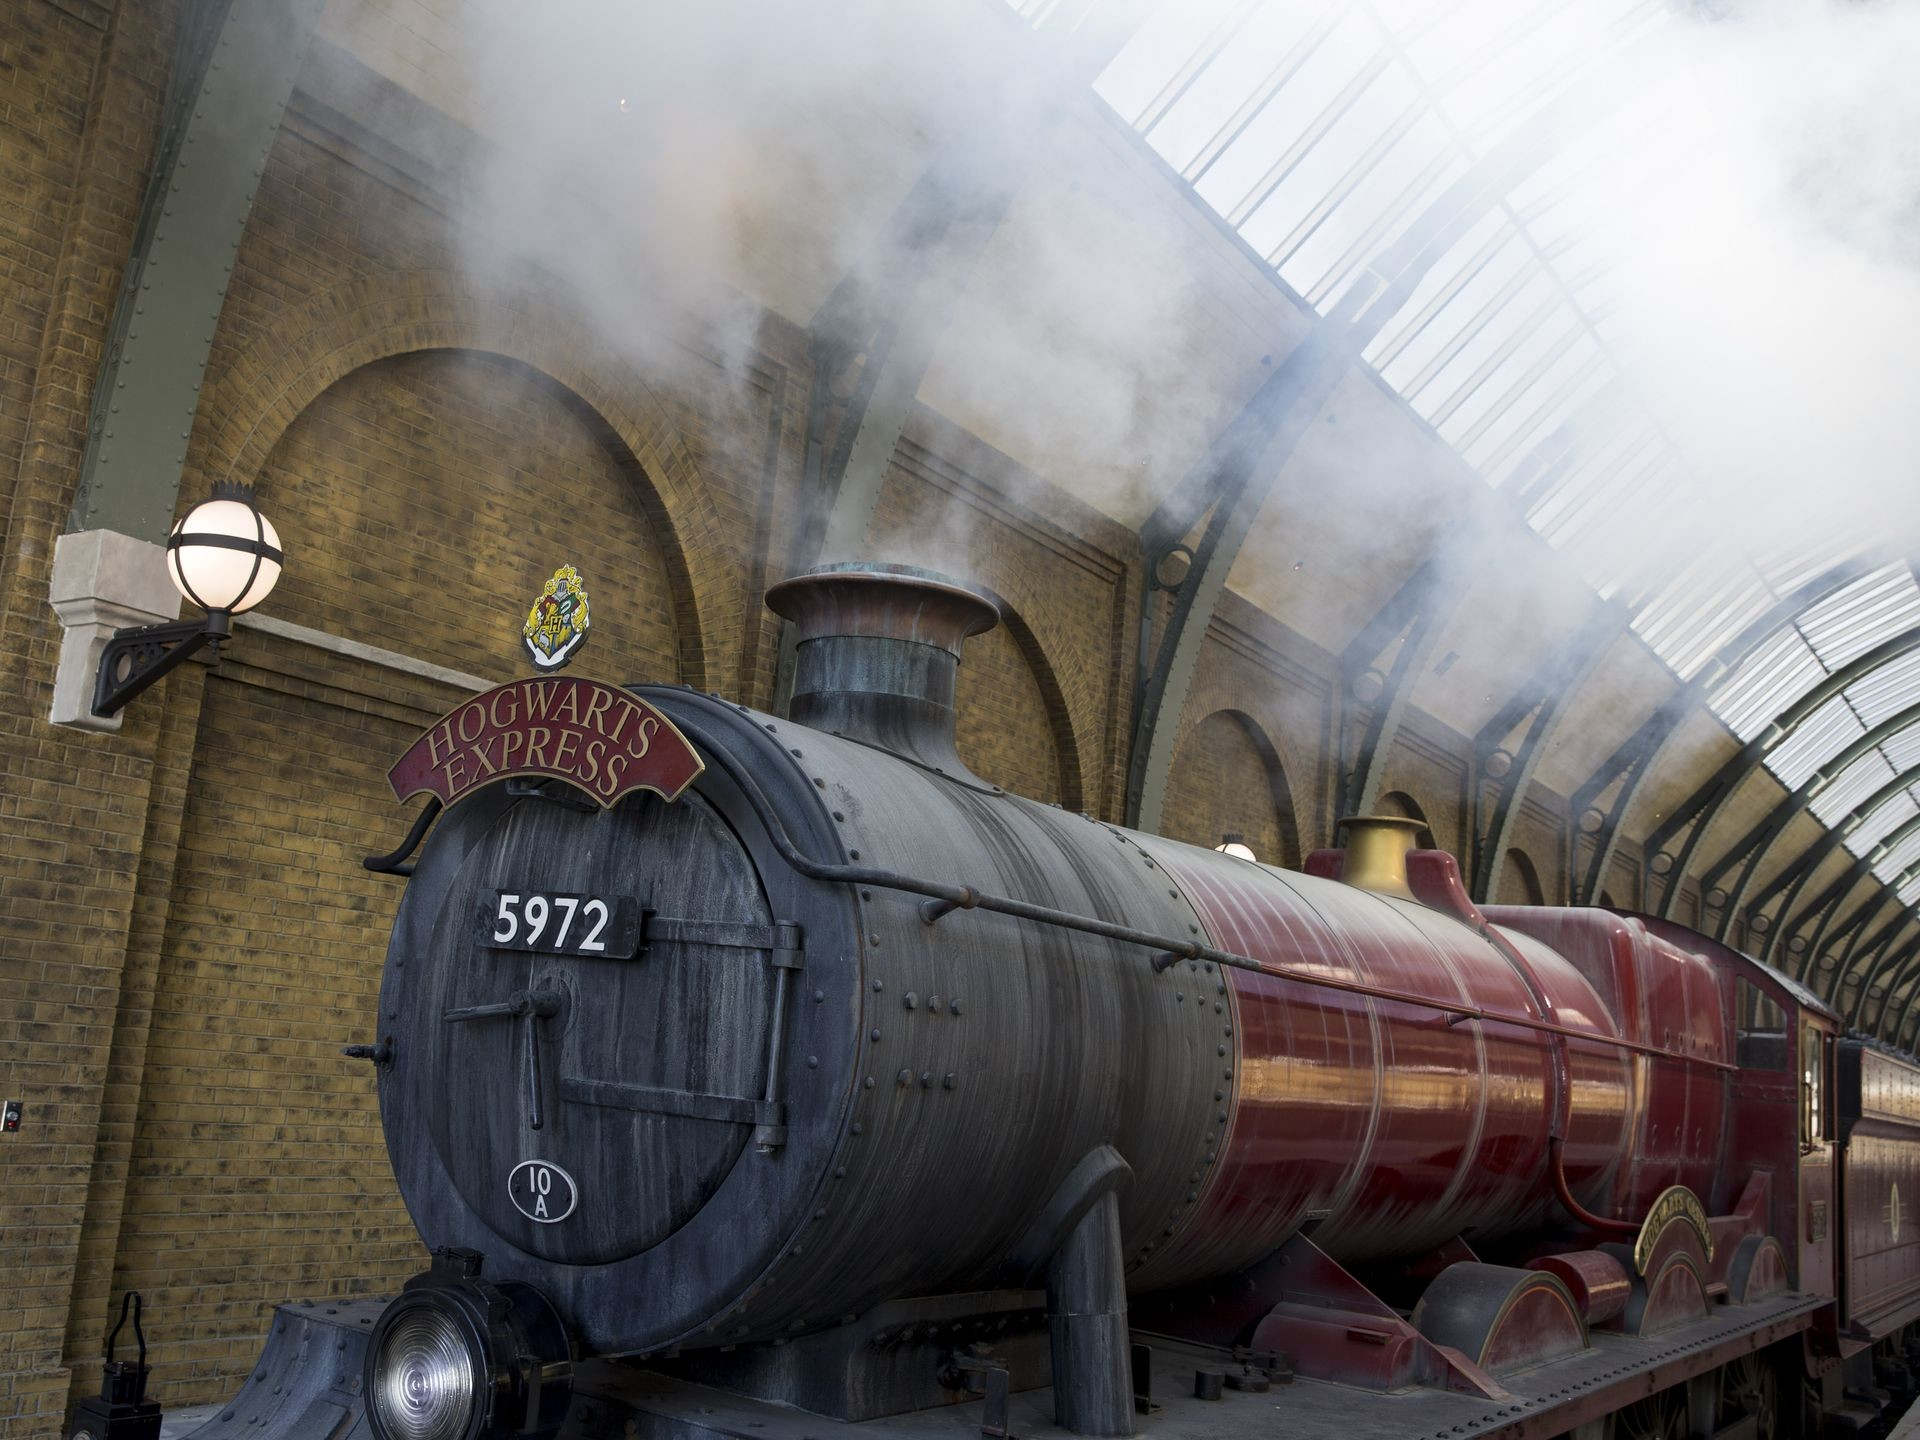 Res: 1920x1440, Hogwarts Express – The Wizarding World of Harry Potter – Diagon Alley